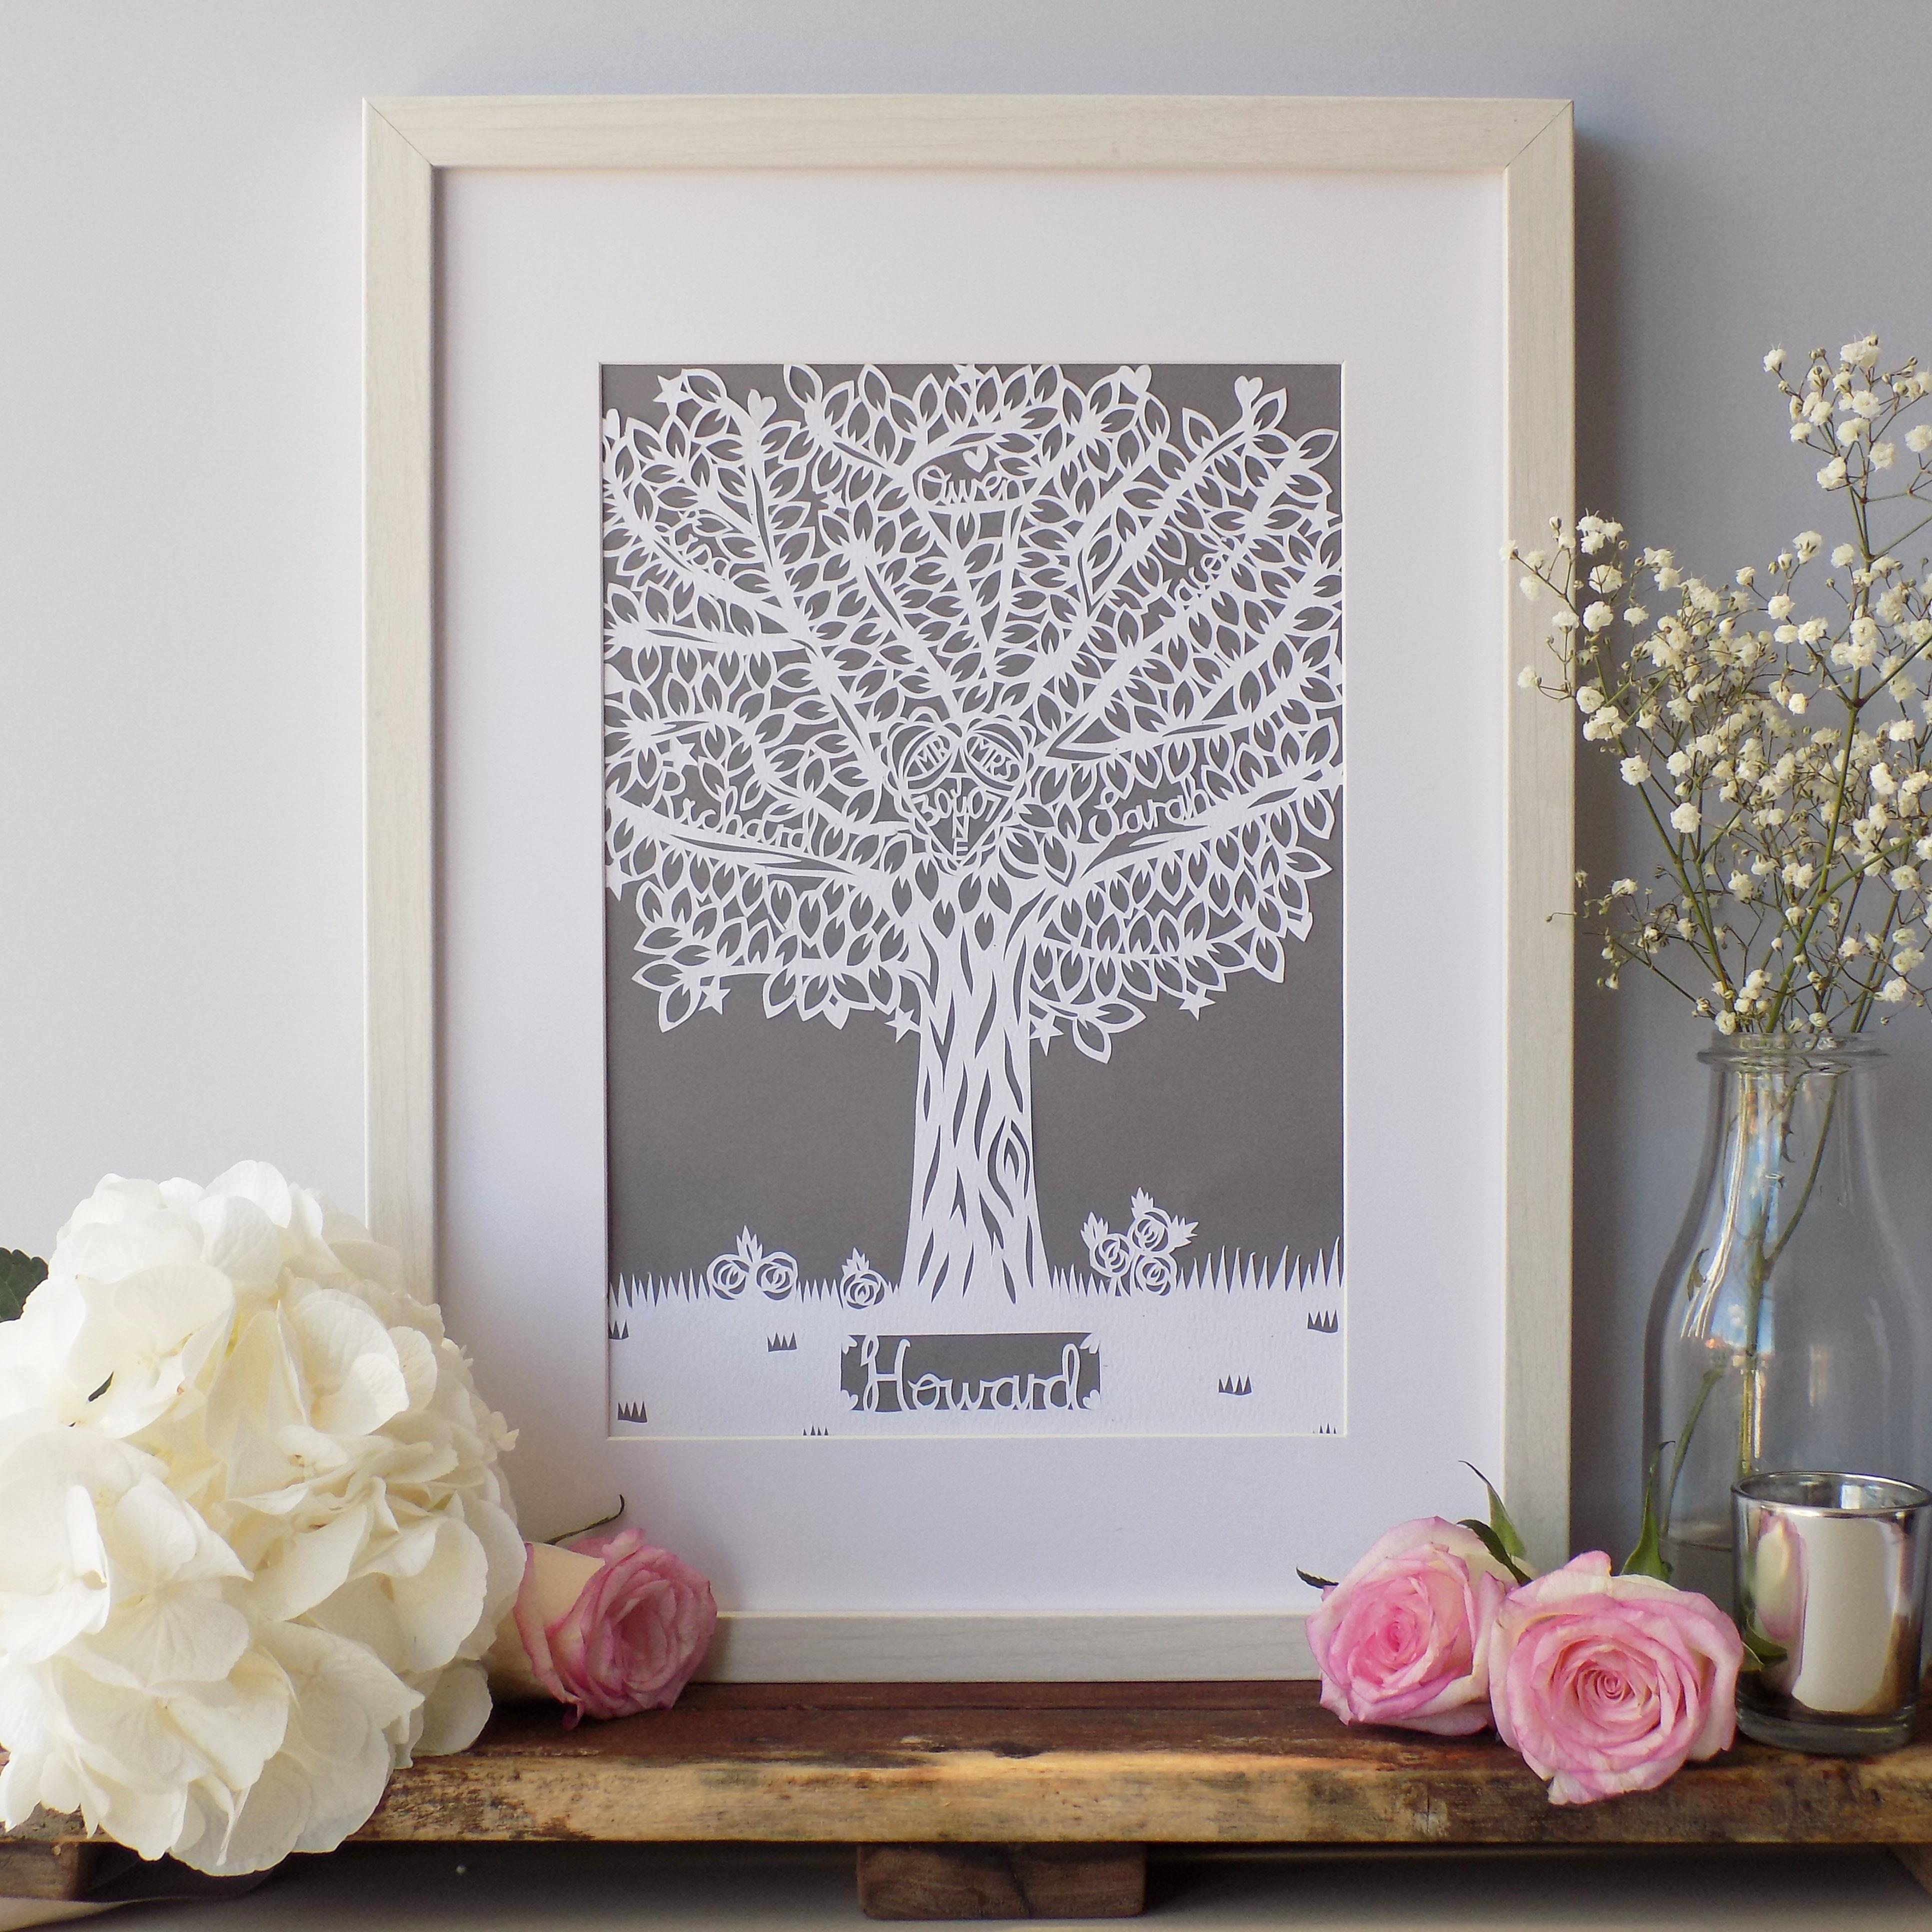 A close up of a family tree paper cut